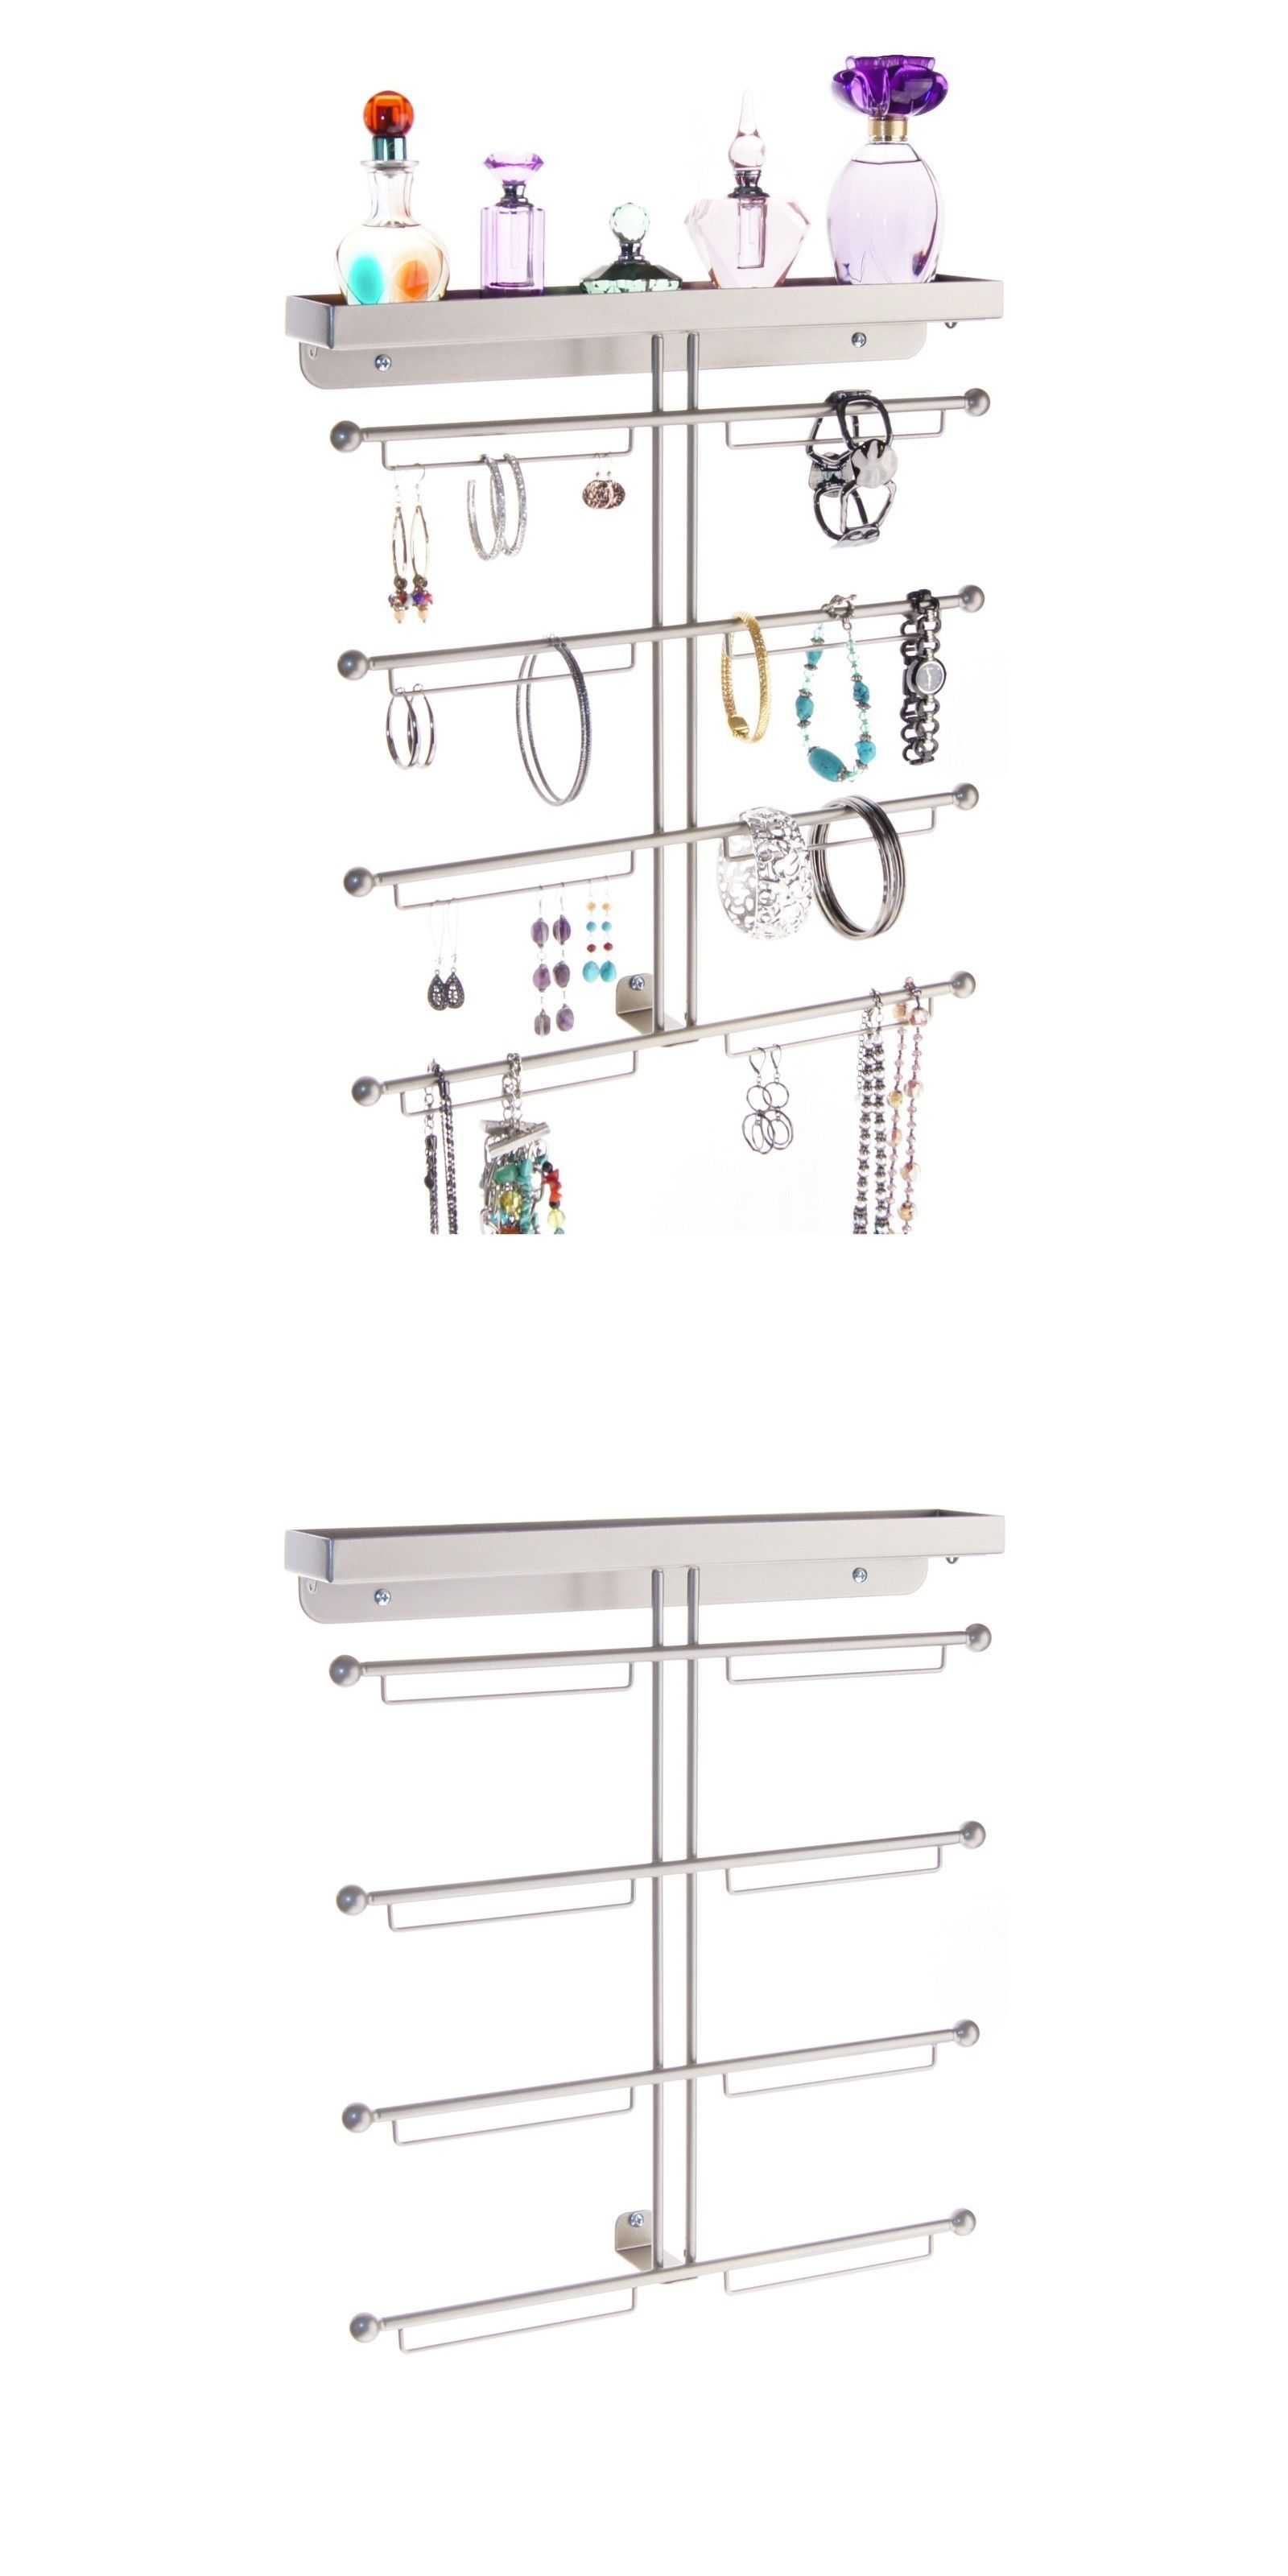 Earring 168161 Jewelry Organizer Hanging Earring Holder Wall